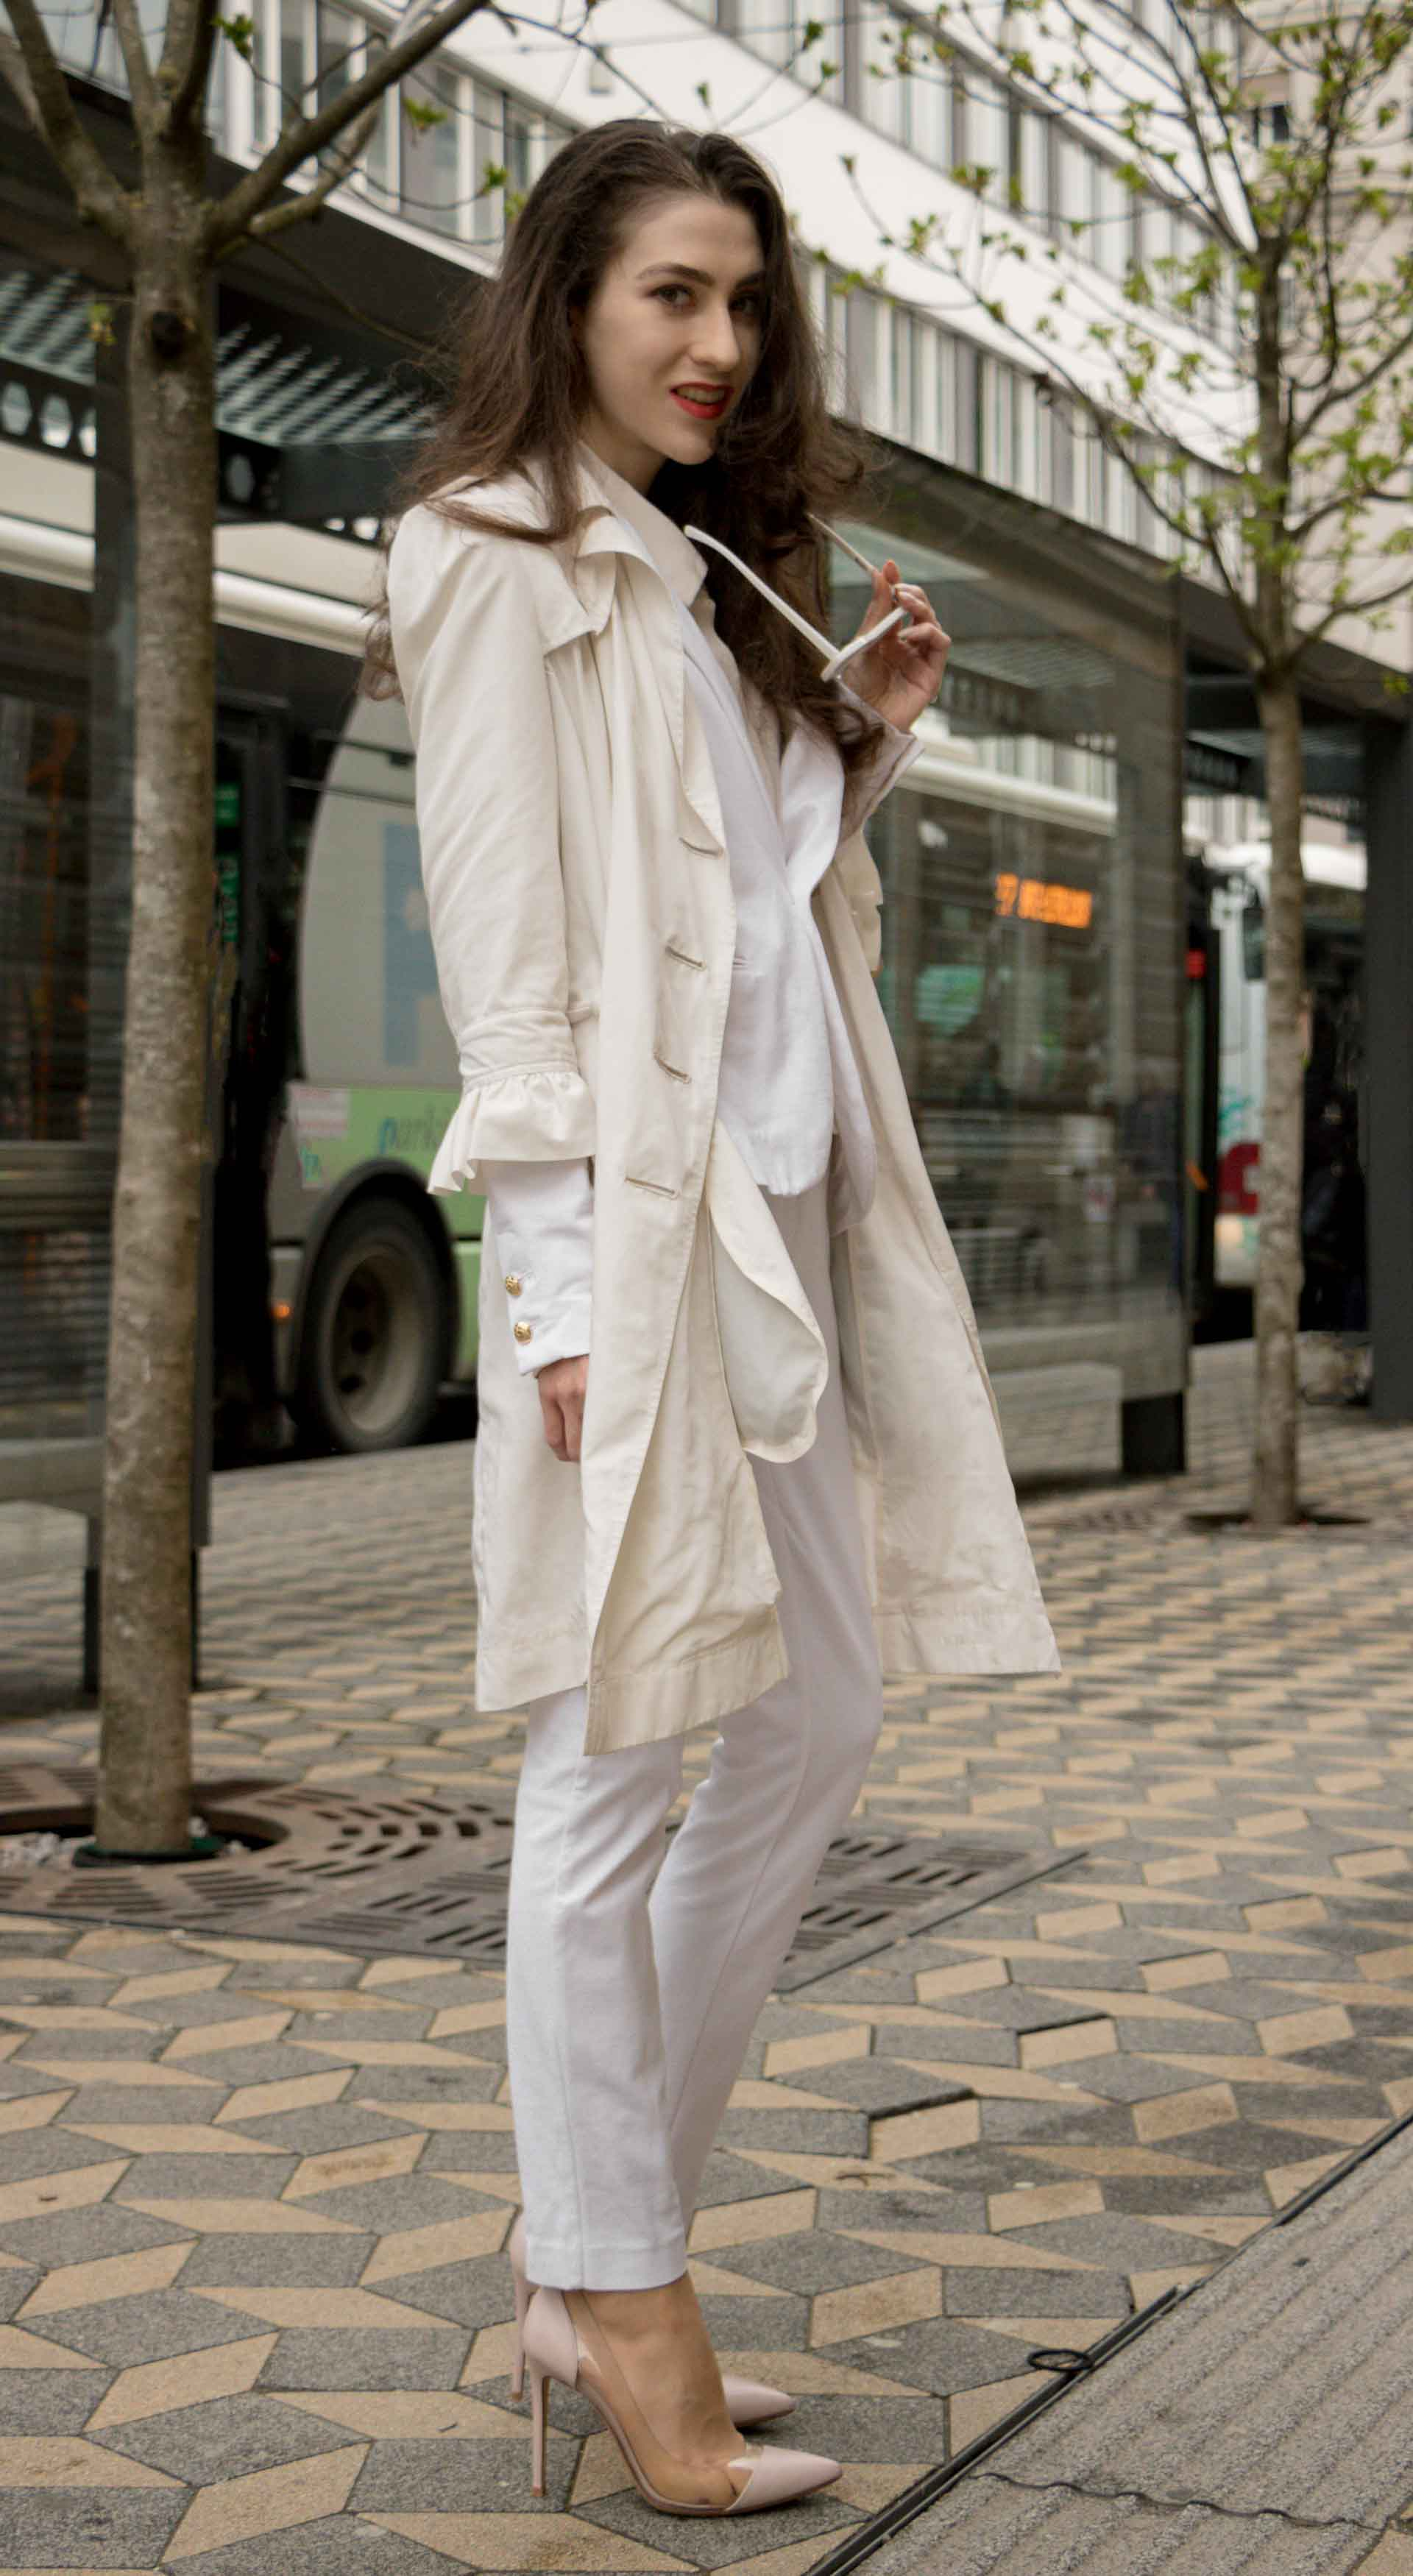 Veronika Lipar Fashion Blogger of Brunette from Wall Street dressed in formal business white suit from Juicy Couture, long white trench coat with ruffled sleeves, Adam Selman x Lespecs white lolita sunglasses, blush Gianvito Rossi plexi pumps for work in spring summer